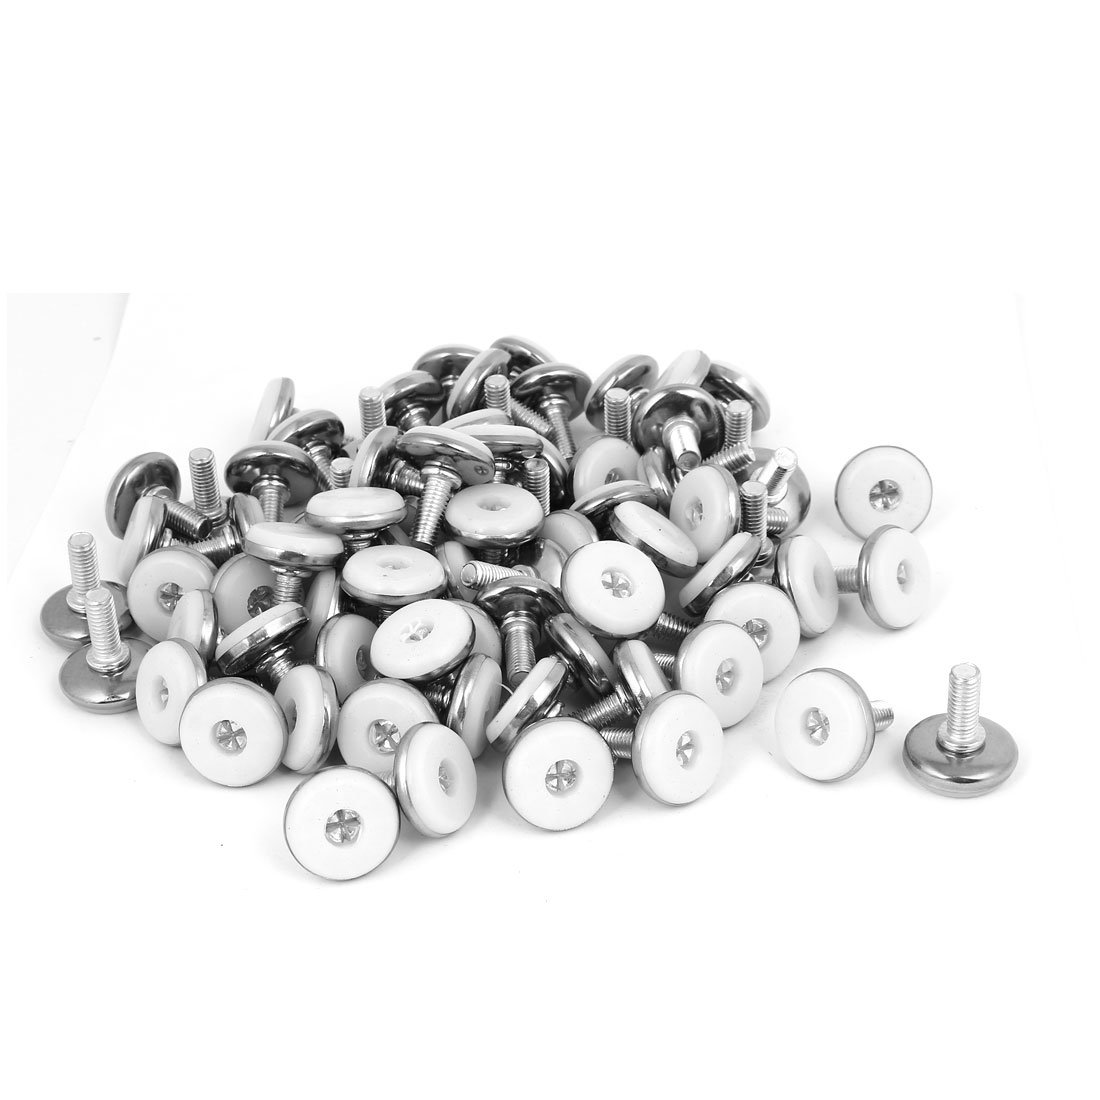 uxcell M8x20mm Plastic Base Adjustable Leveling Glide Foot 100pcs for Cabinet Table Leg